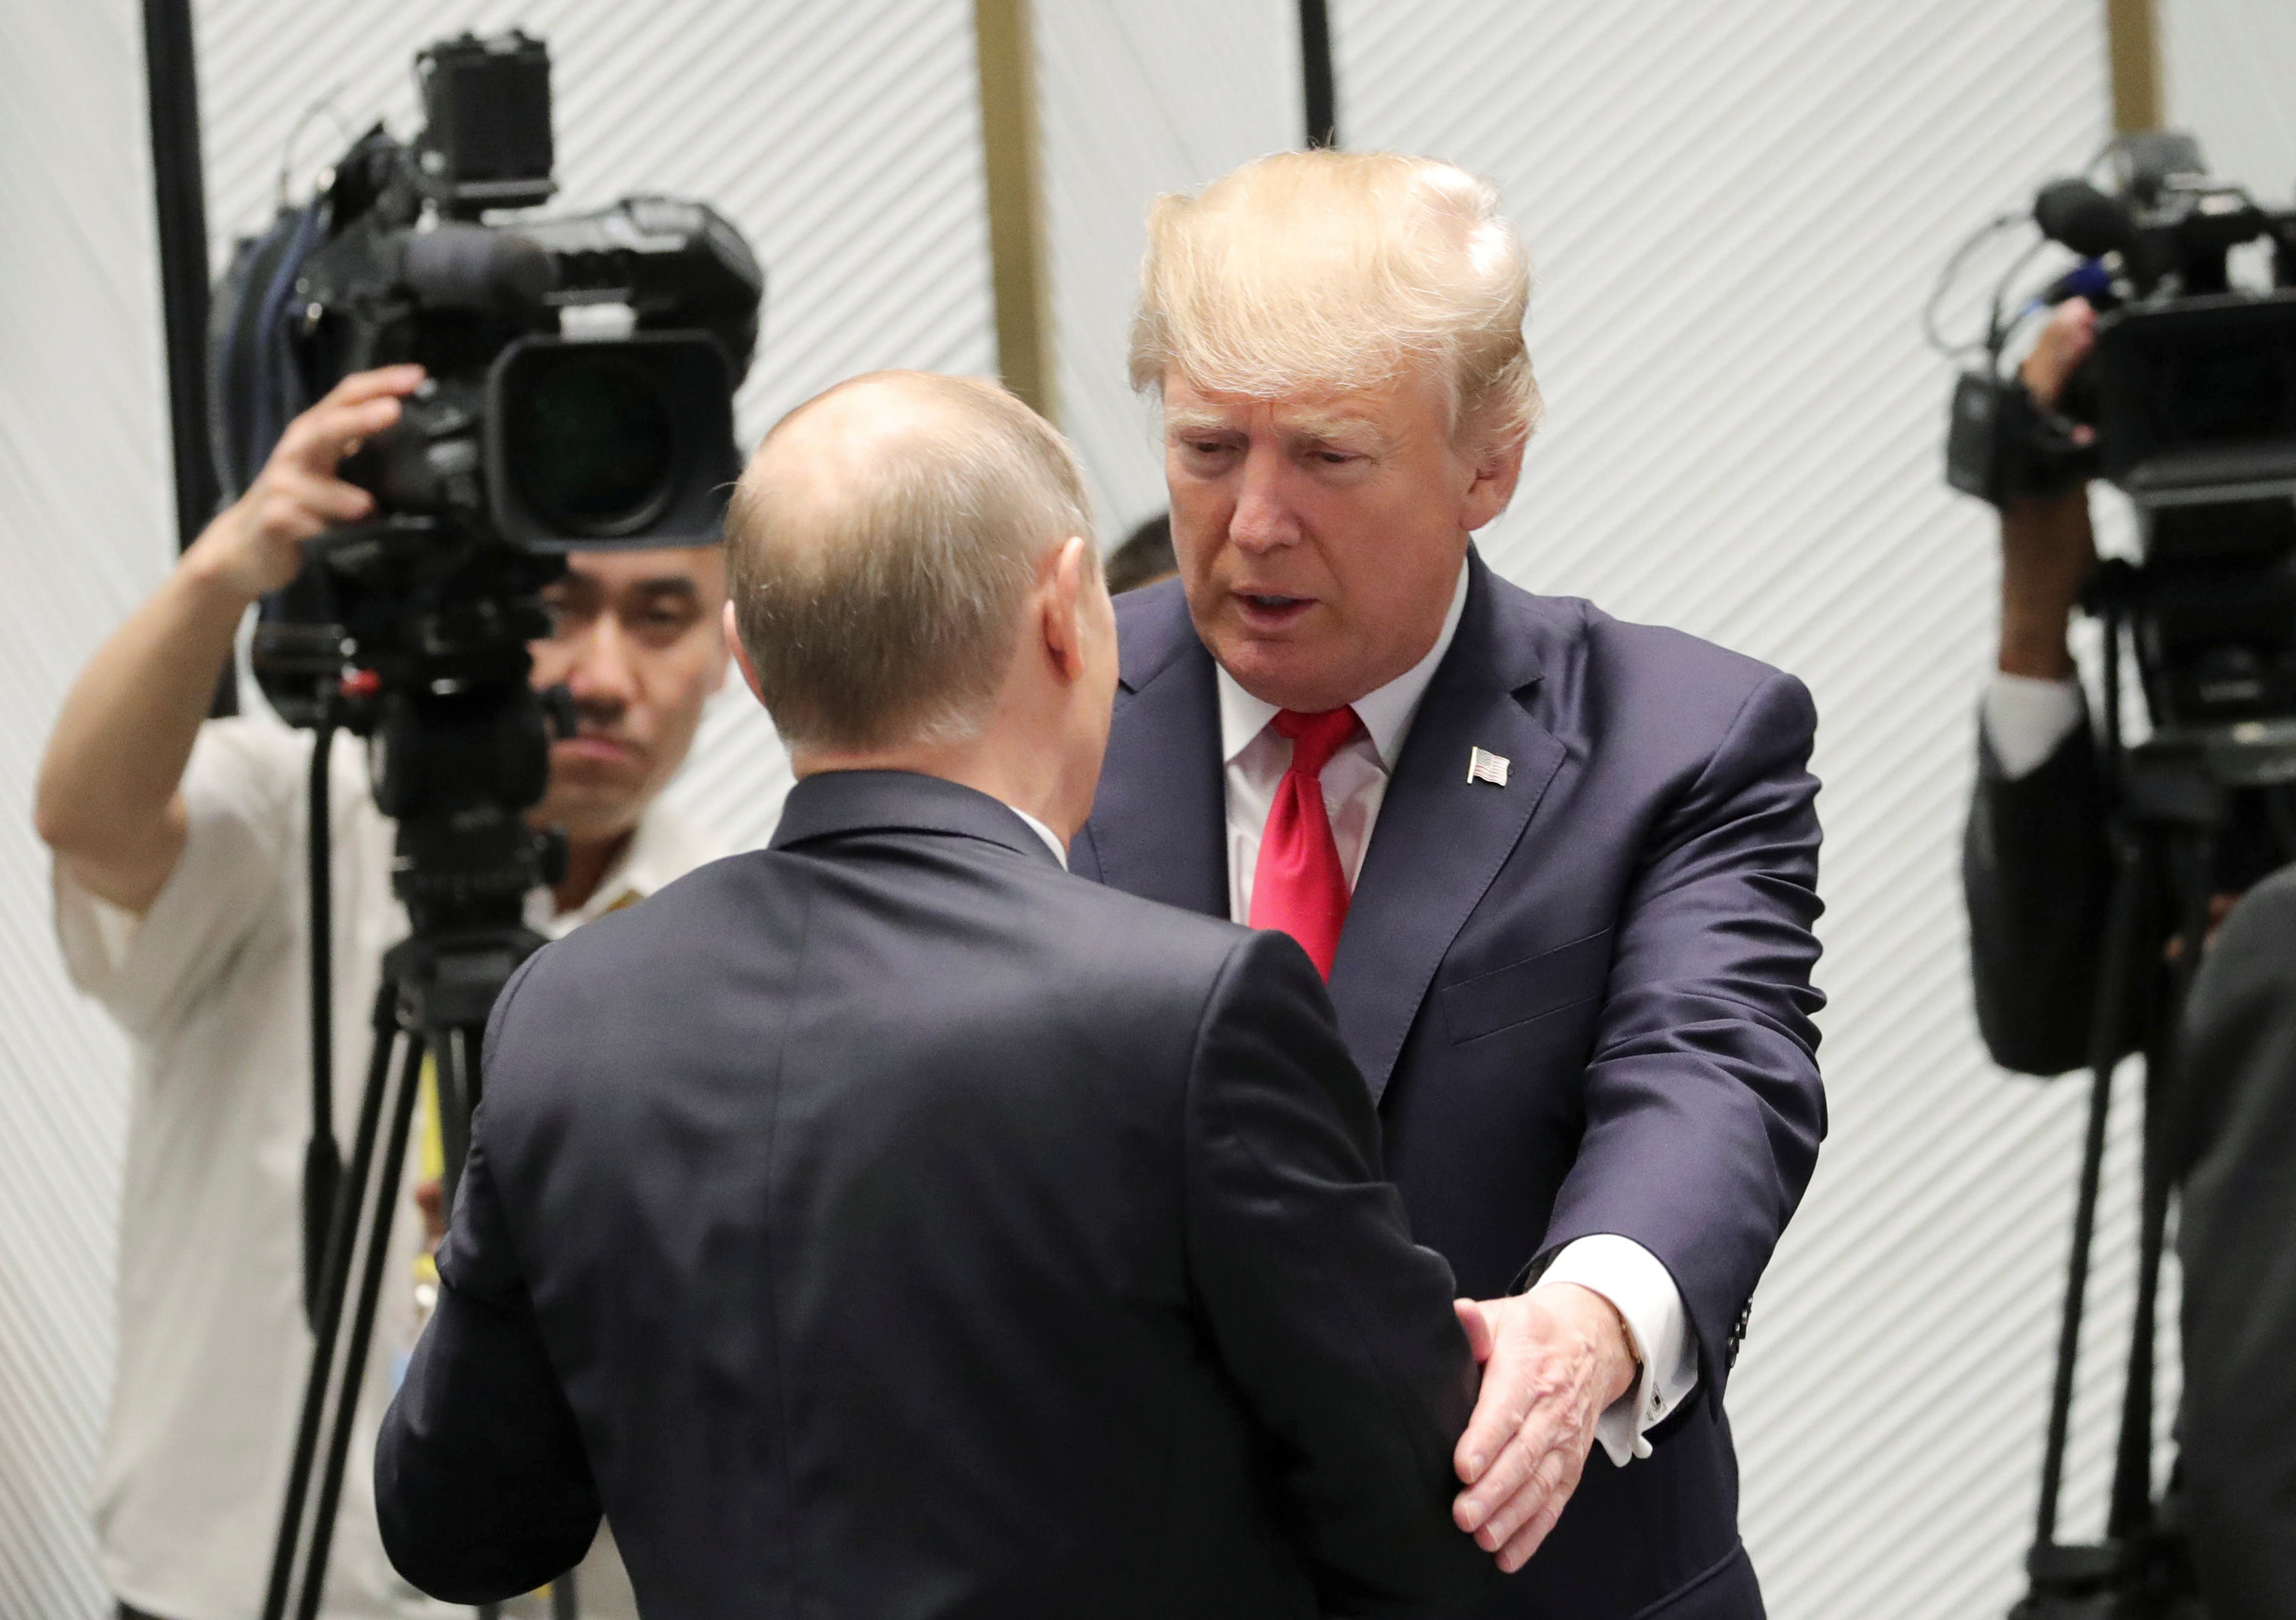 U.S. President Donald Trump and Russian President Vladimir Putin talk before a session of the APEC summit in Danang, Vietnam November 11, 2017. Sputnik/Mikhail Klimentyev/Kremlin via REUTERS ATTENTION EDITORS - THIS IMAGE WAS PROVIDED BY A THIRD PARTY. - RC16B5325160